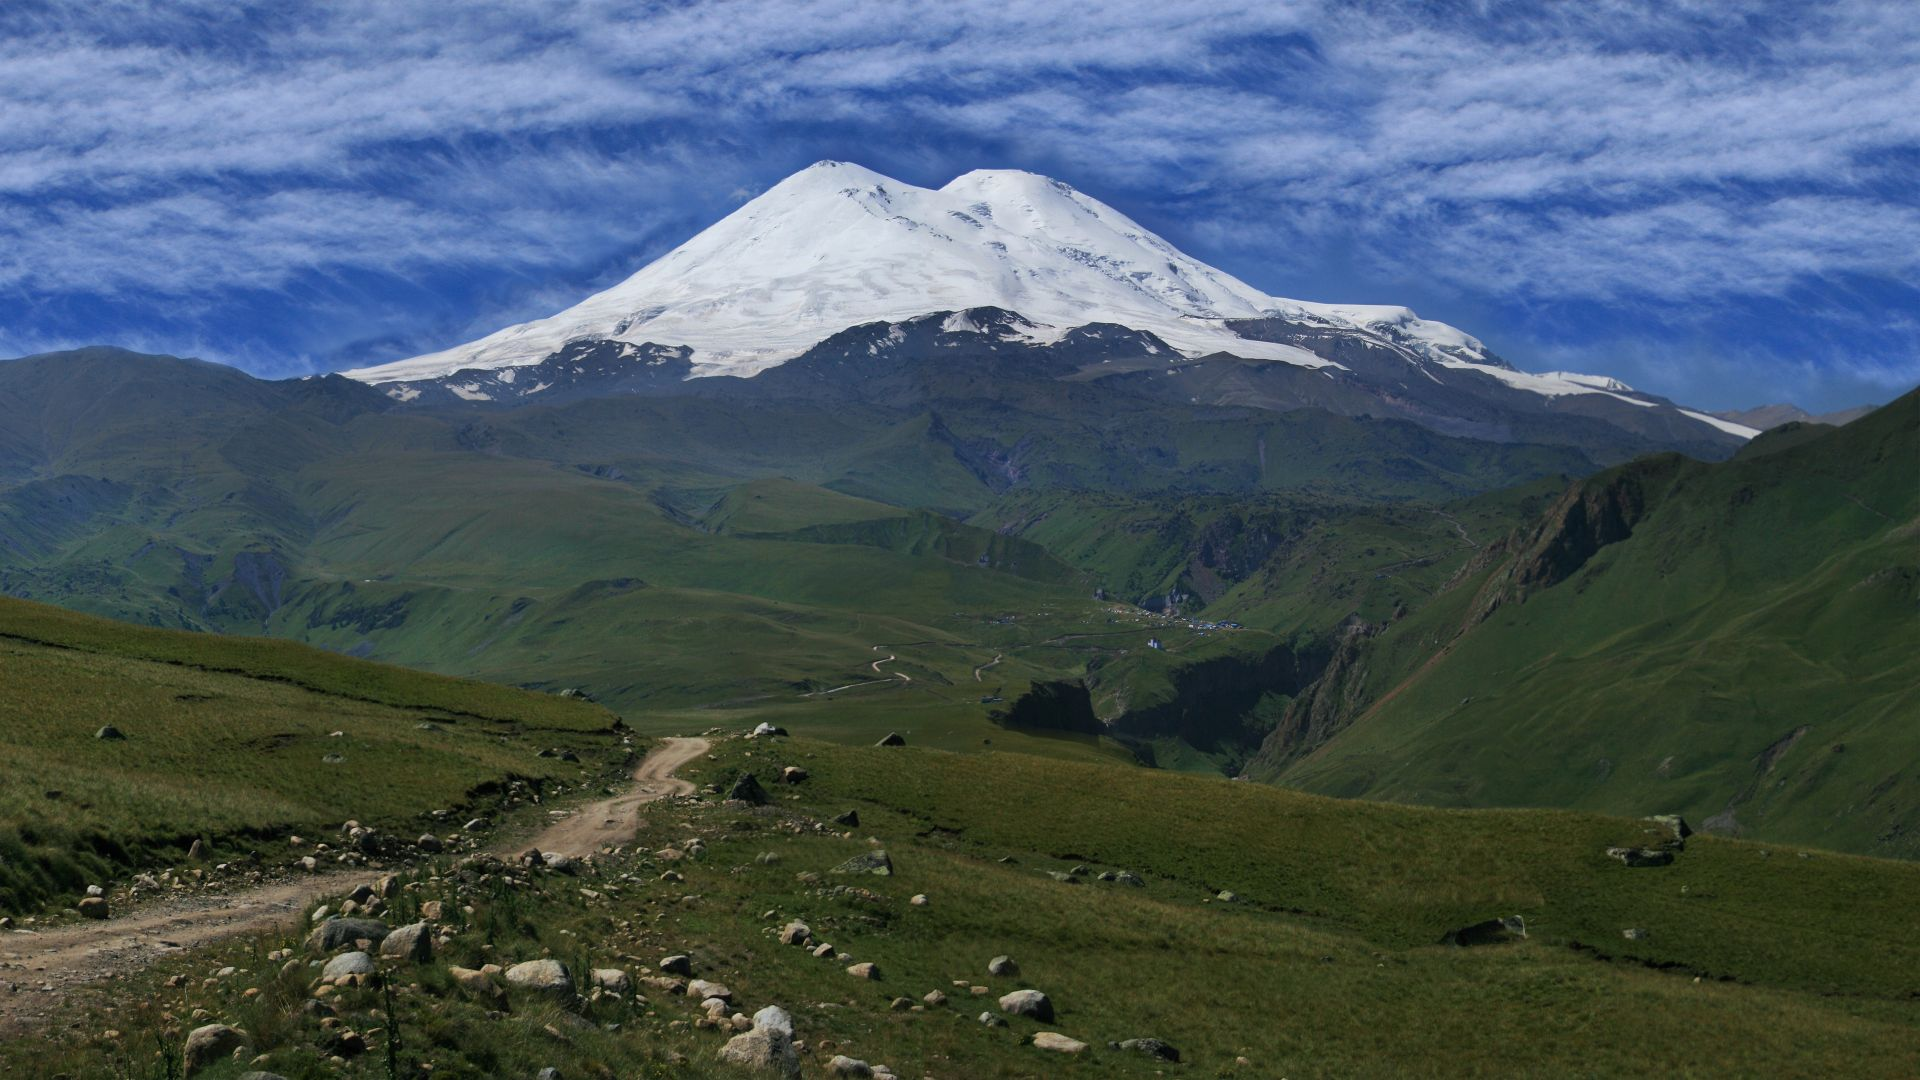 Elbrus, 5k, 4k wallpaper, Caucasus, mountains, volcano, sky, meadows (horizontal)